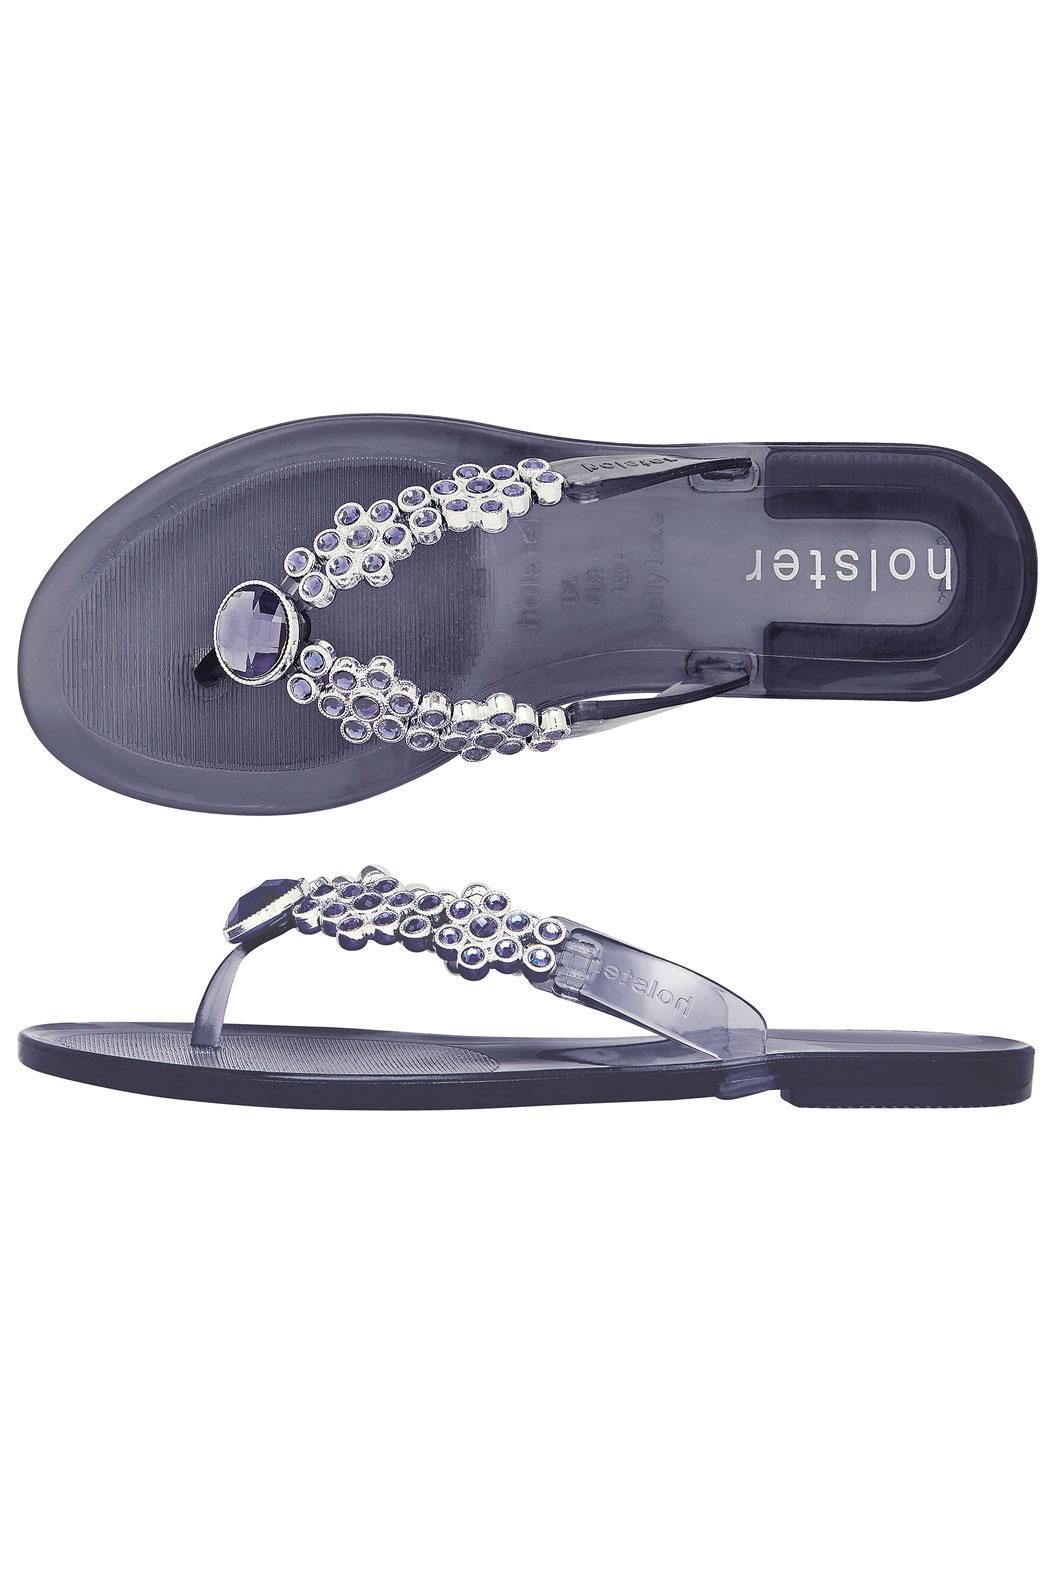 8853883f22b0 Bloom flipflop style sandal in  midnight  from Holster the Worlds No.1  fashion